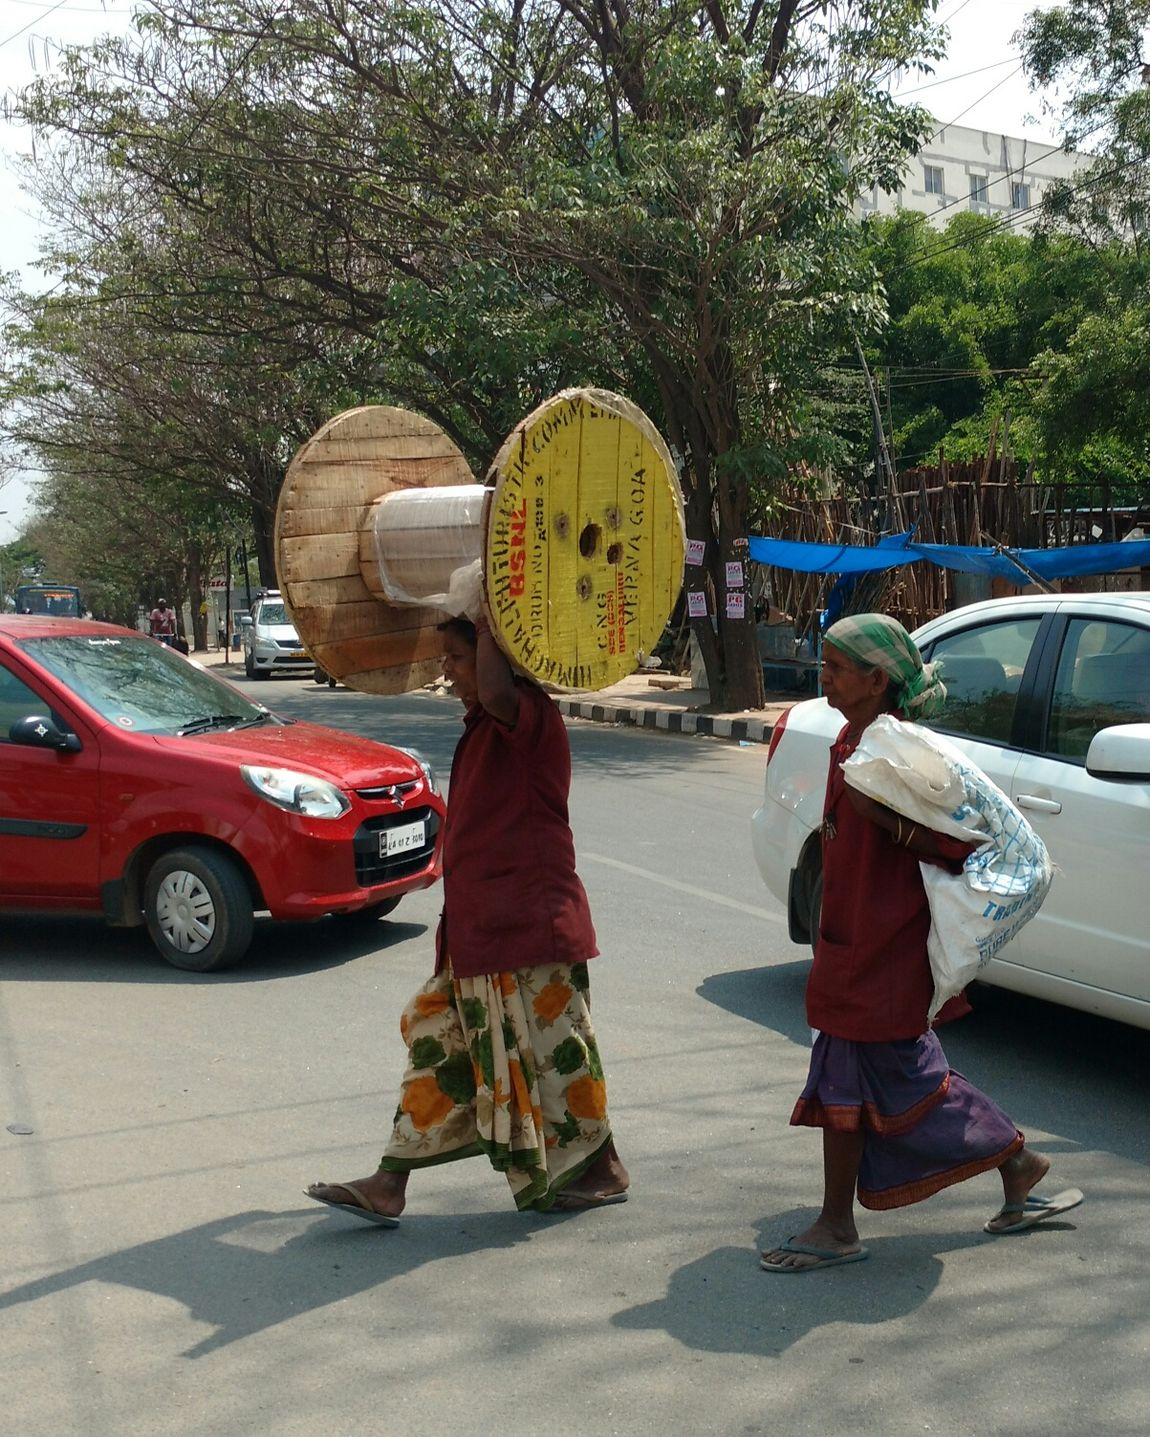 EyeEm Diversity Real People Adult Standing Adults Only Day Street South India Indianstories City Saviours Bangalore Worker Life Workers At Work Bangalore Traffic Women Hardworking India Outdoors People City Migrants Matter